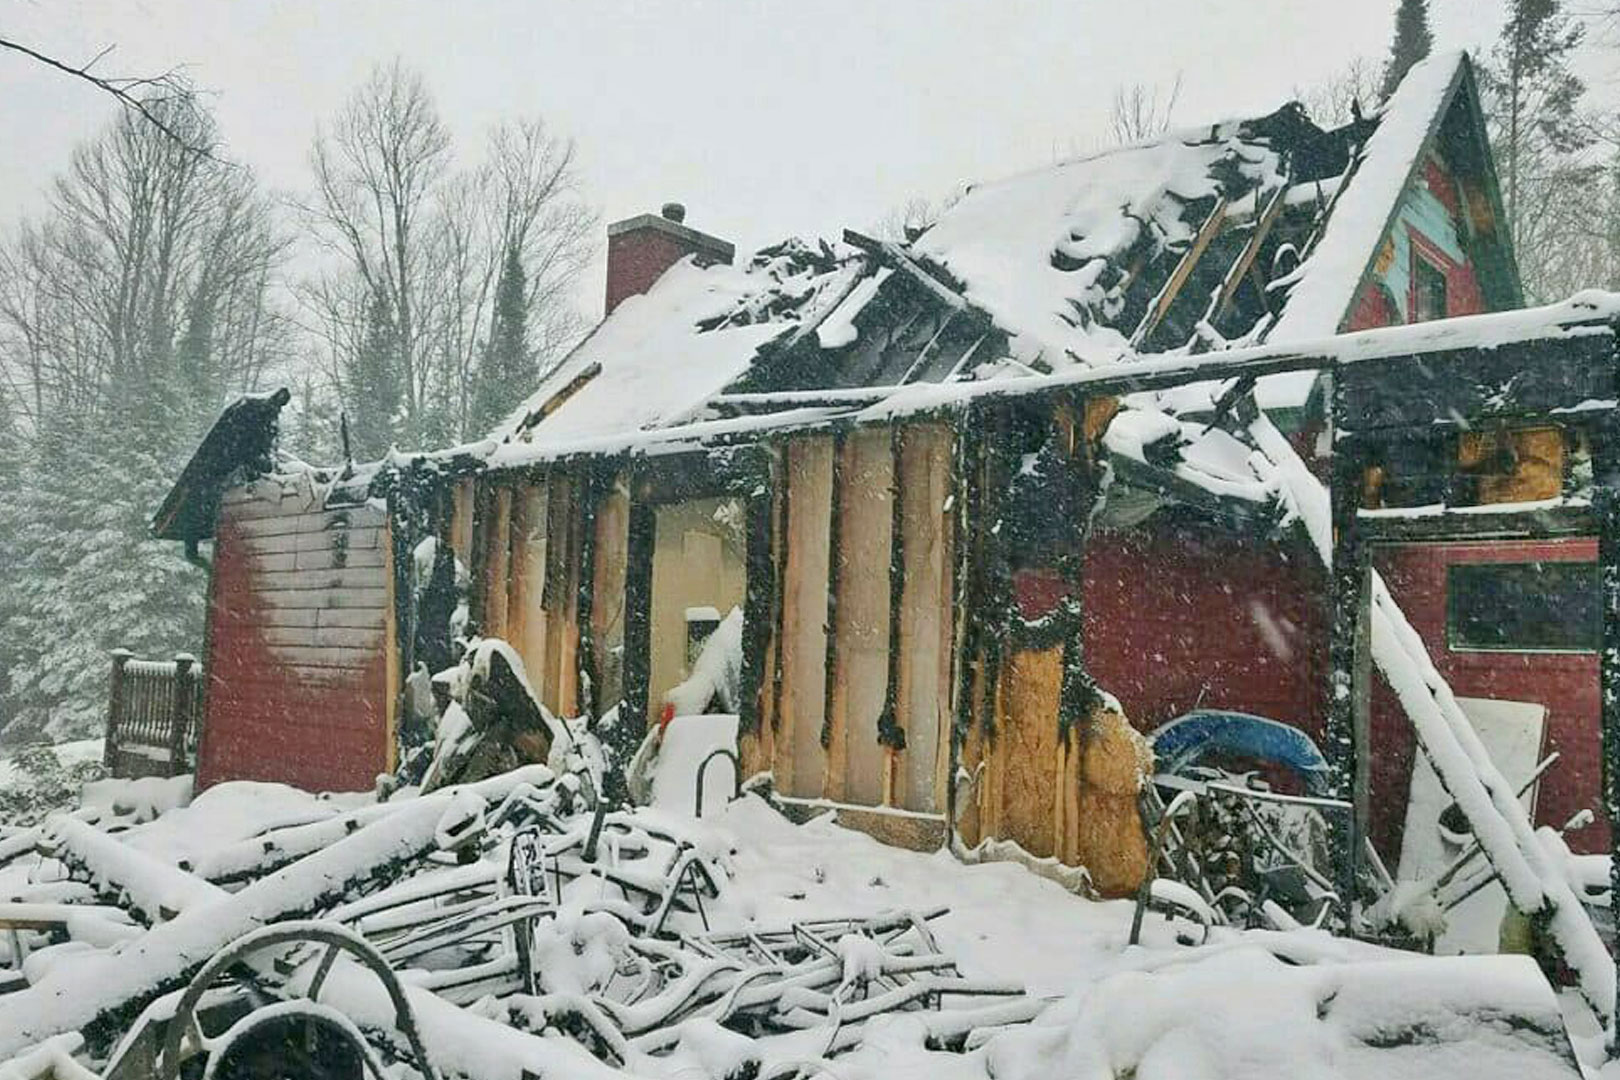 On January 21st Local 139 member Lance Buisse lost his home in a fire that took almost everything.